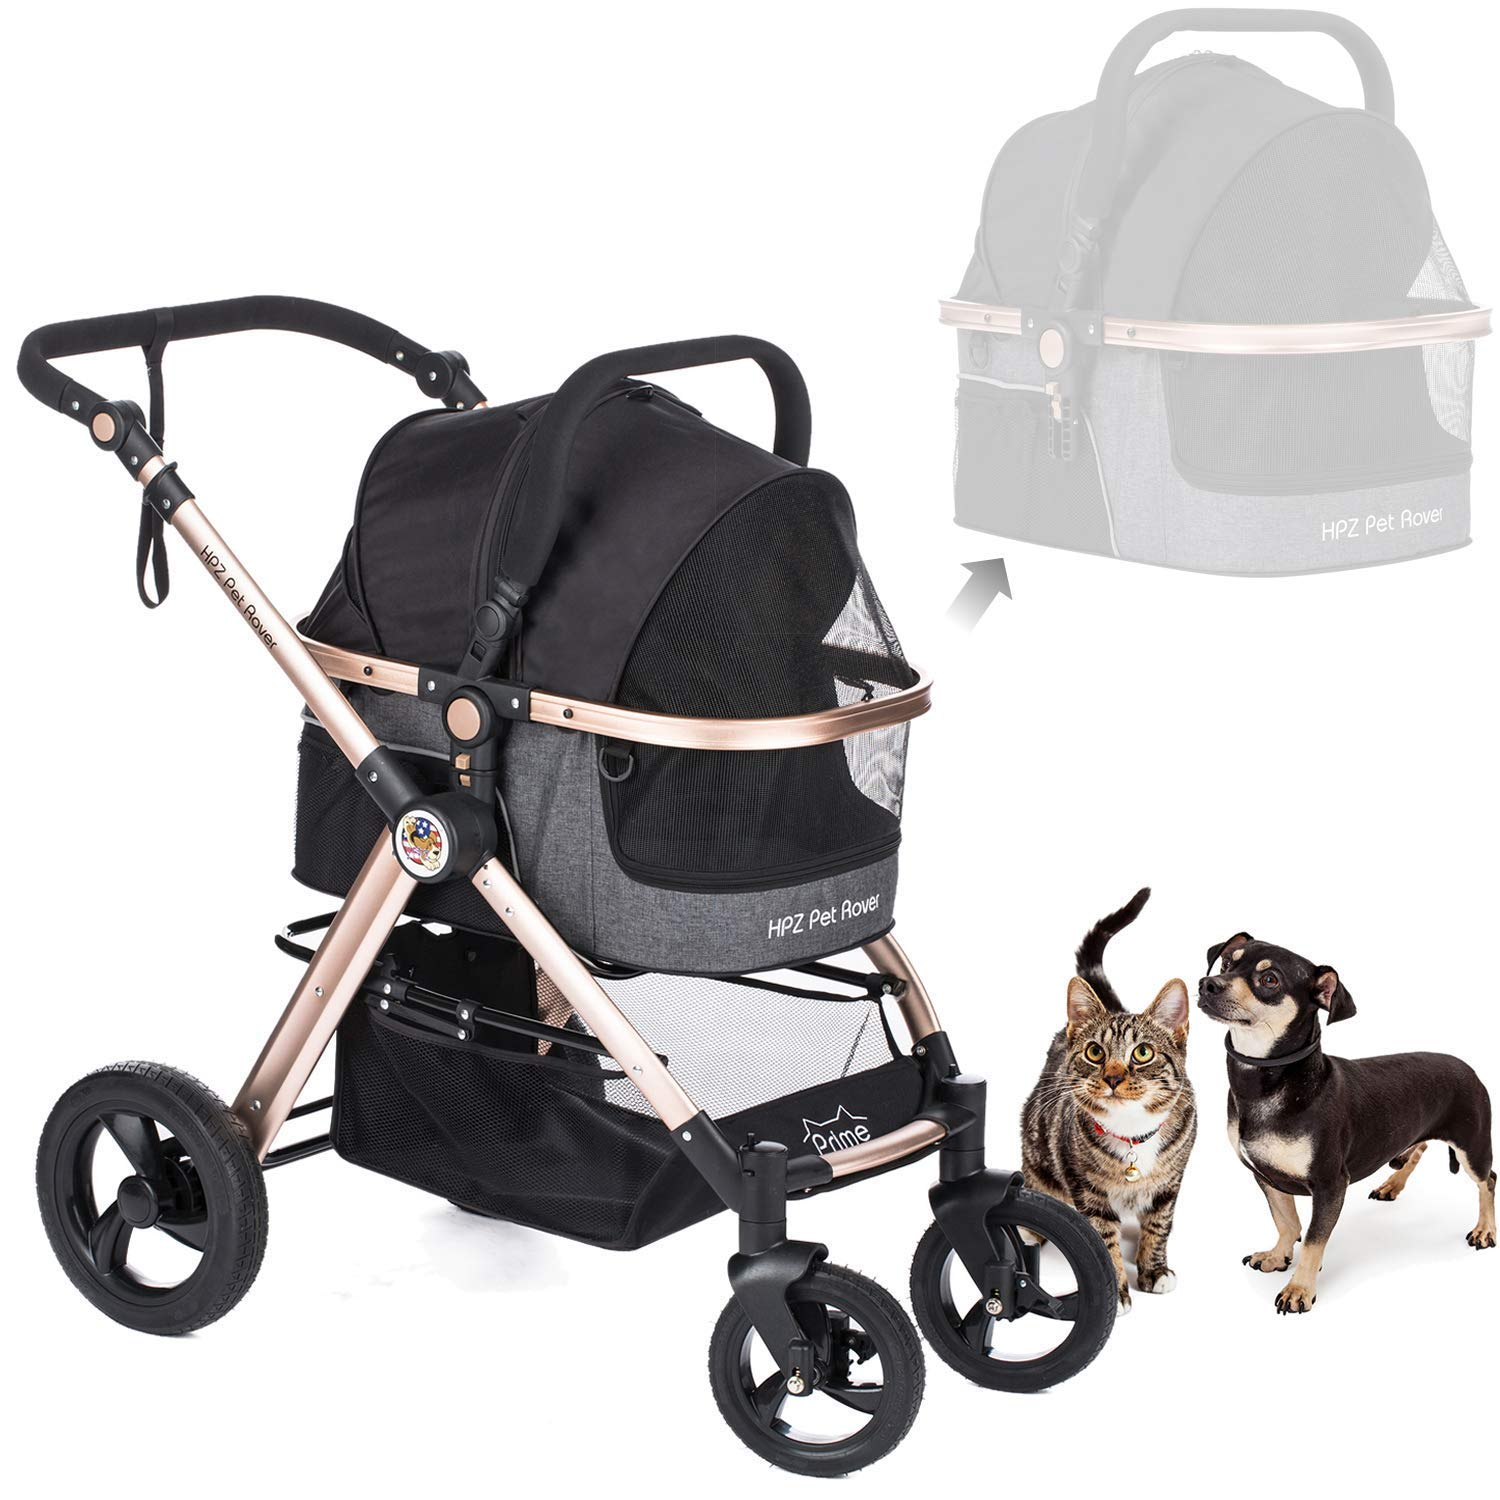 HPZ Pet Rover Prime 3-in-1 Luxury Dog/Cat/Pet Stroller (Travel Carrier + Car Seat +Stroller) with Detach Carrier/Pump-Free Rubber Tires/Aluminum Frame for Medium & Small Pets (Black)